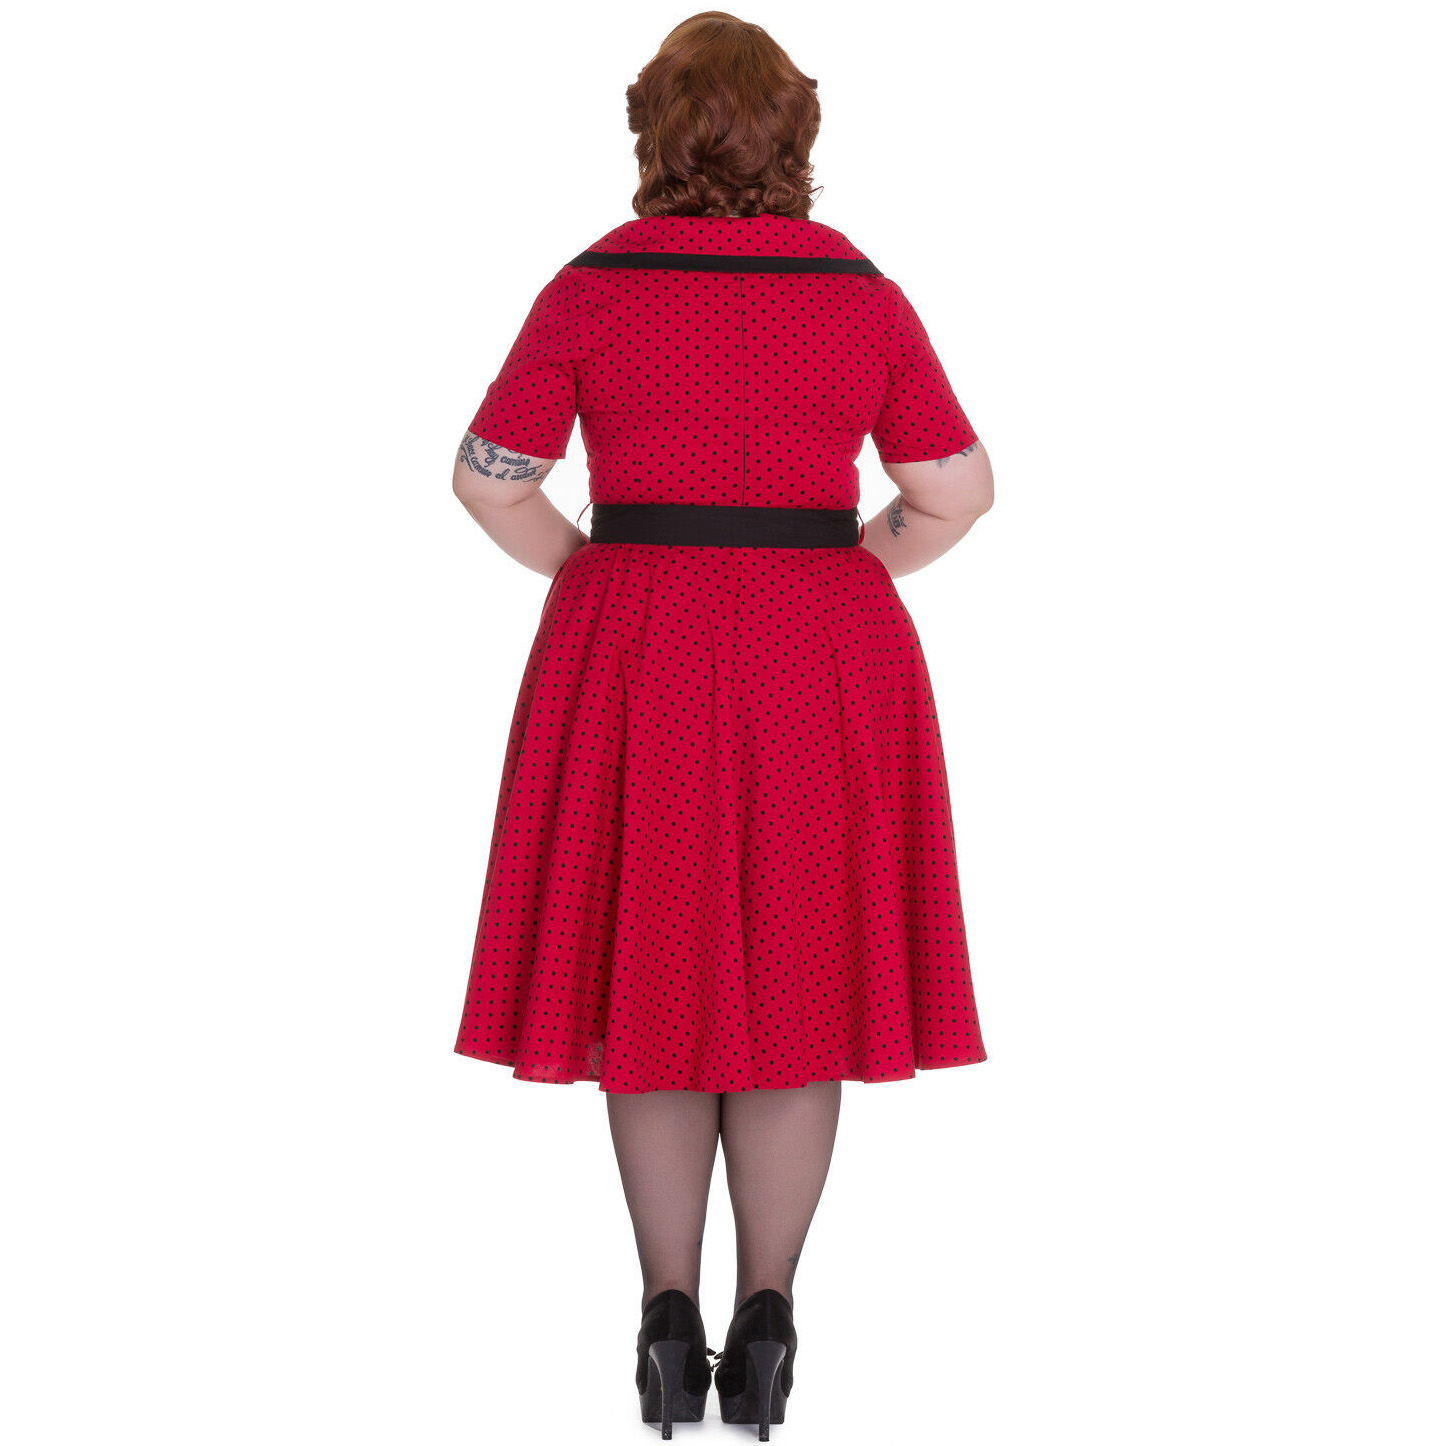 Hell-Bunny-40s-50s-Pin-Up-Swing-Dress-MIMI-Polka-Dot-Black-Red-All-Sizes thumbnail 9